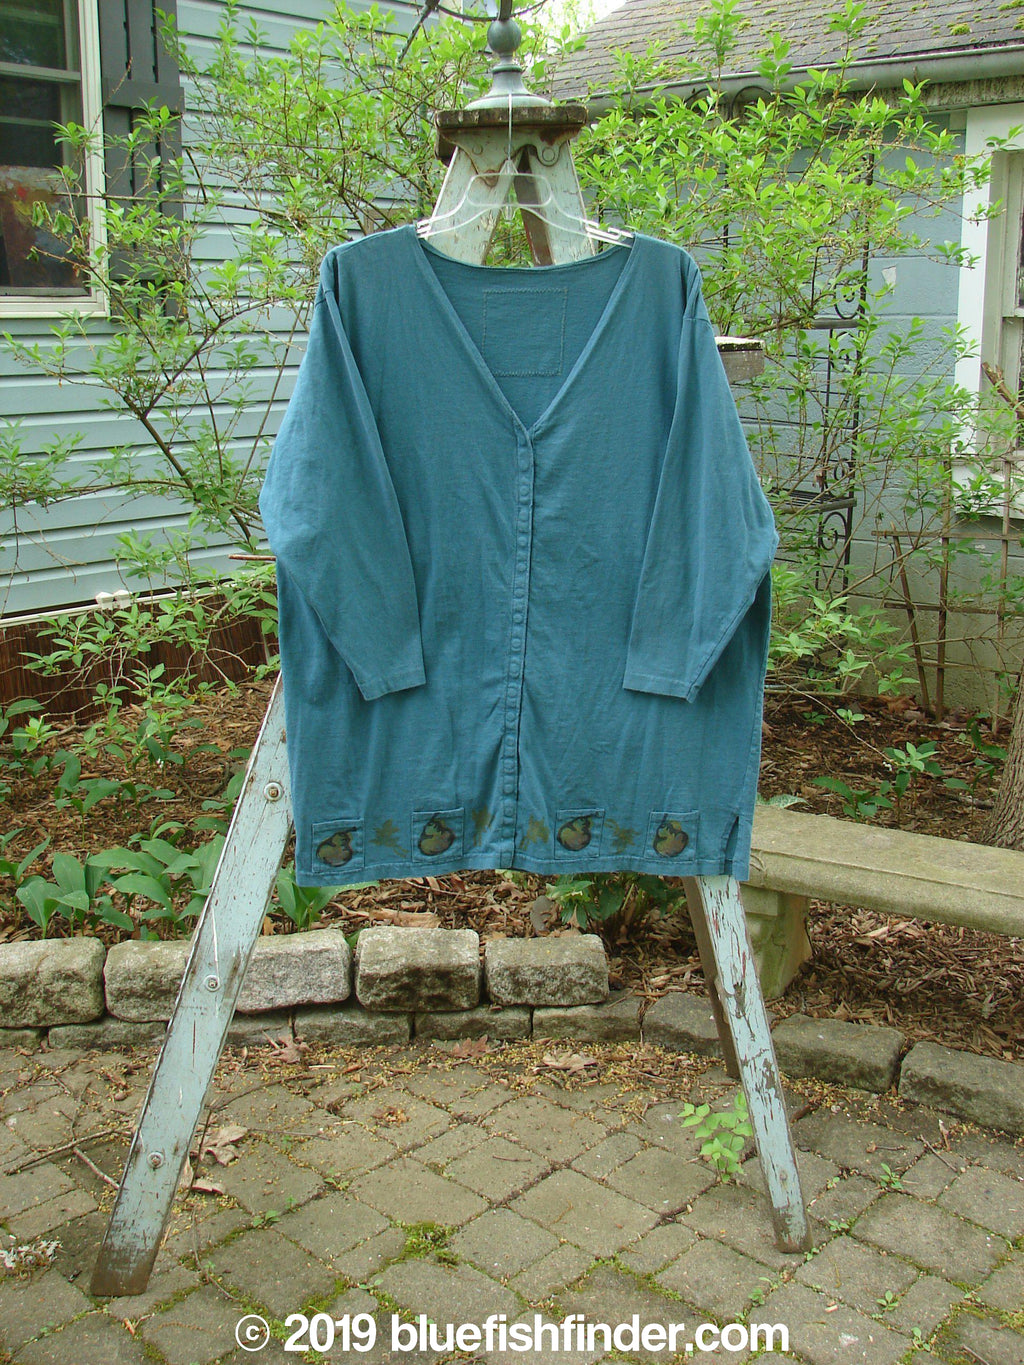 Vintage Blue Fish Clothing 1993 Sticks and Stones Jacket Pear Harvest Ocean OSFA- Bluefishfinder.com